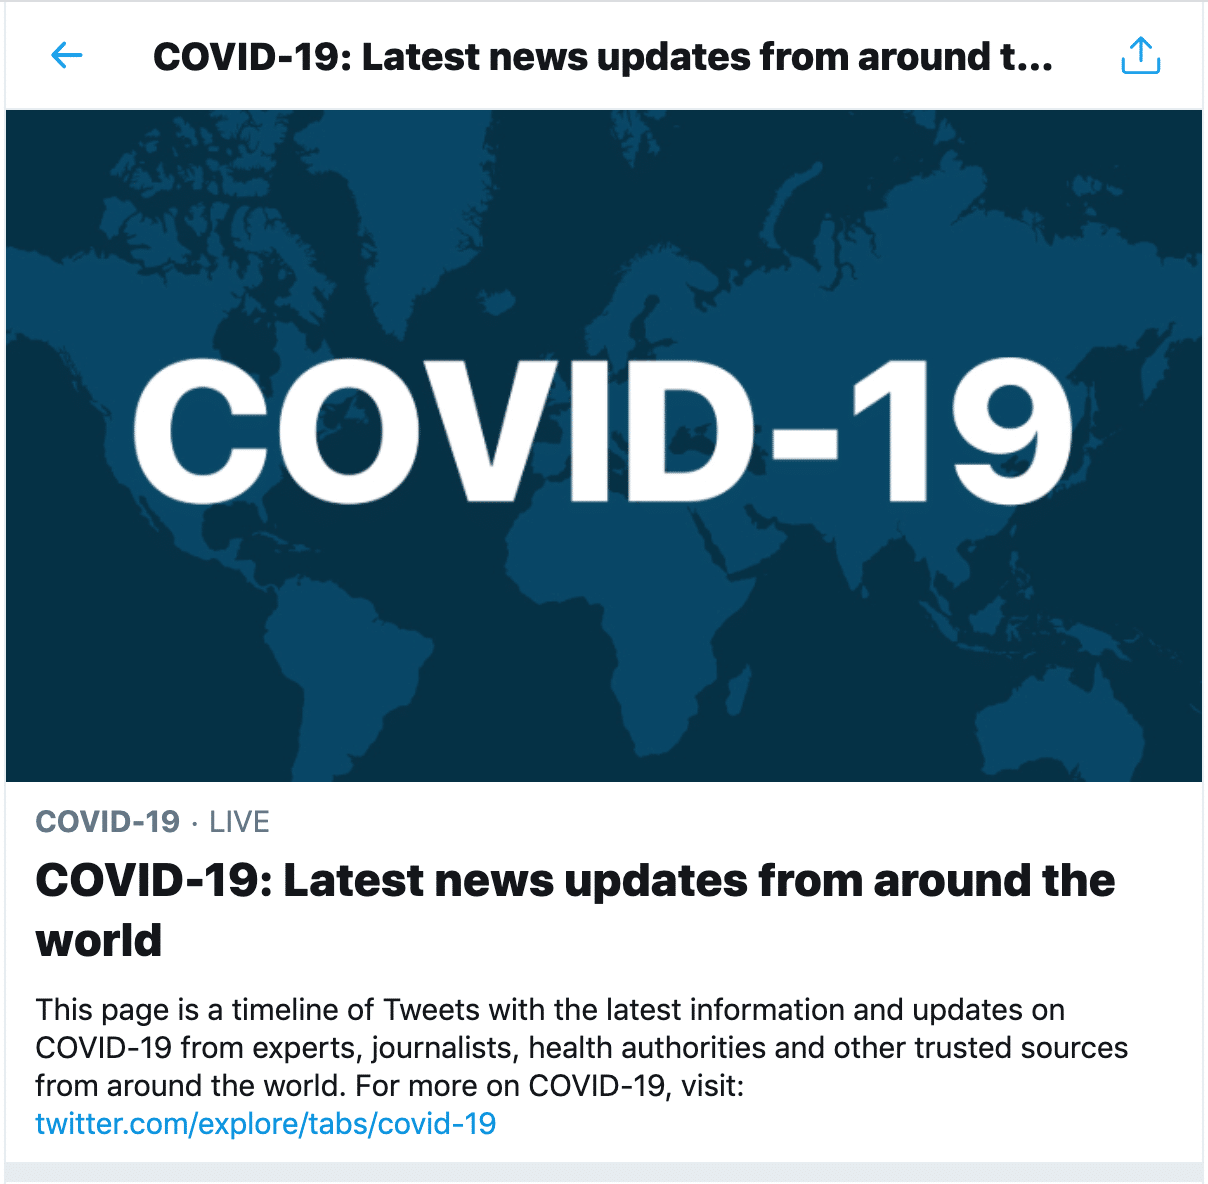 COVID 19 update page